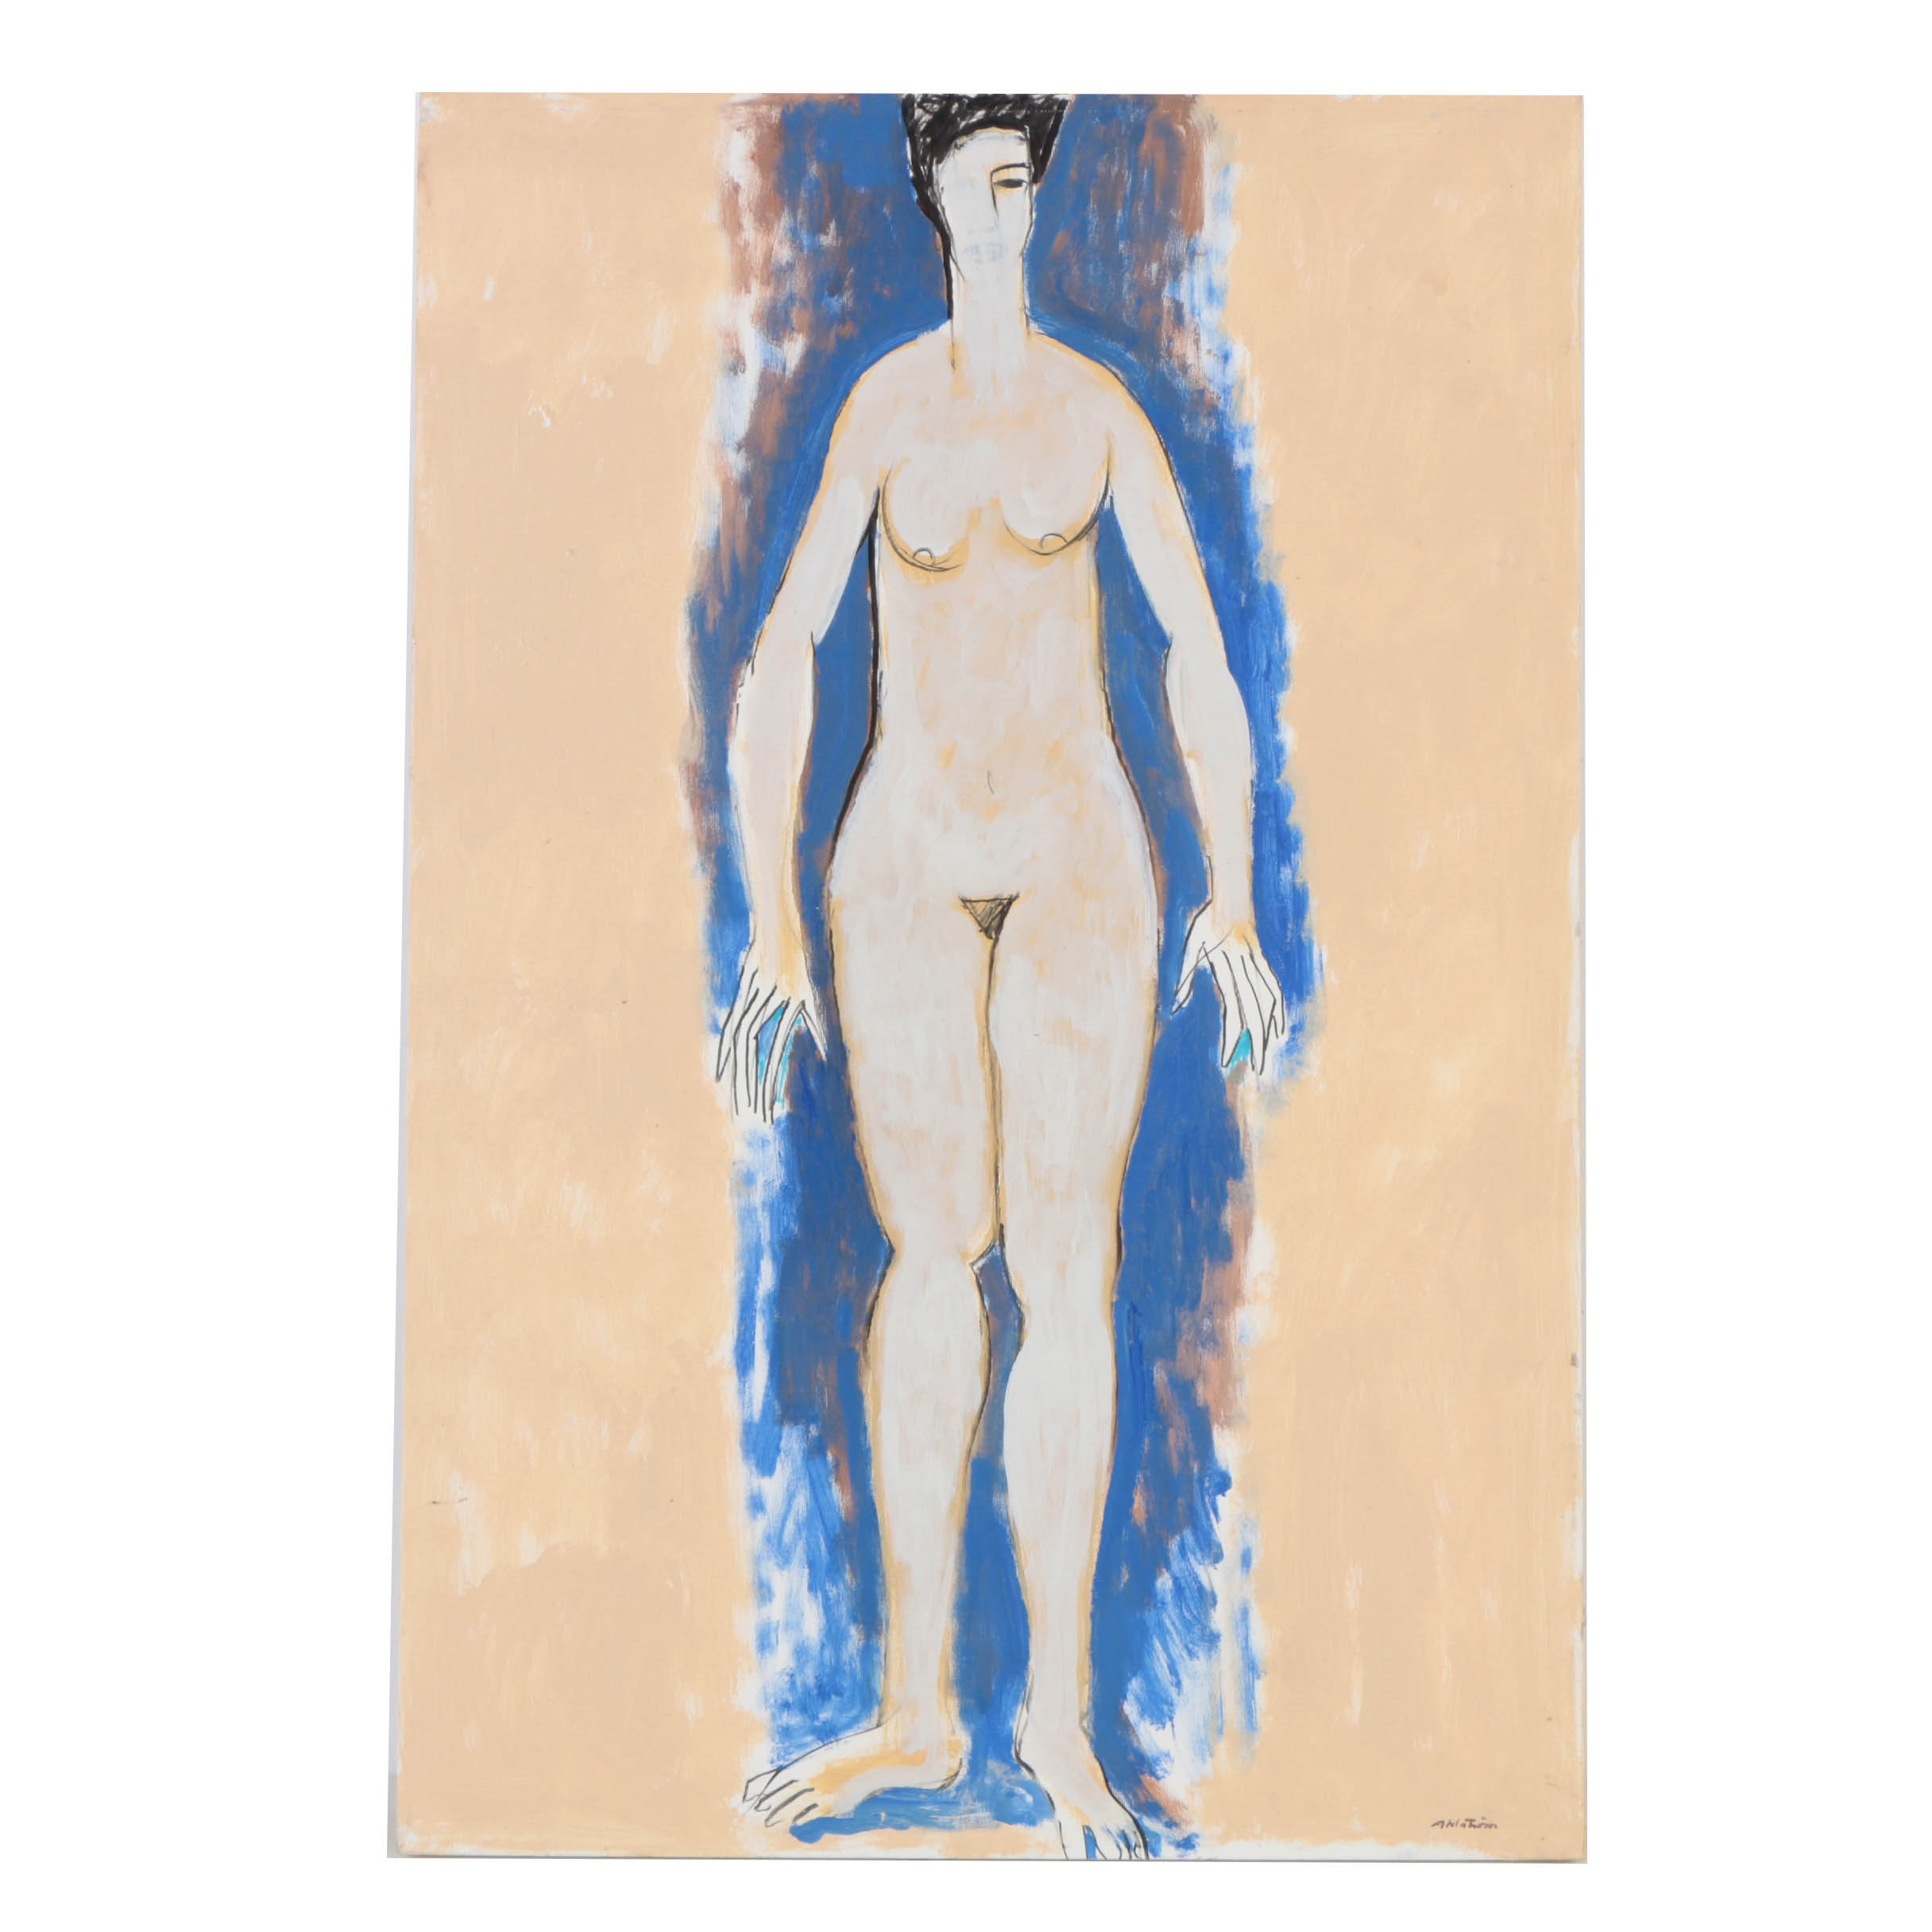 Ronald Ahlstrom Abstract Acrylic Painting on Canvas Nude Figure